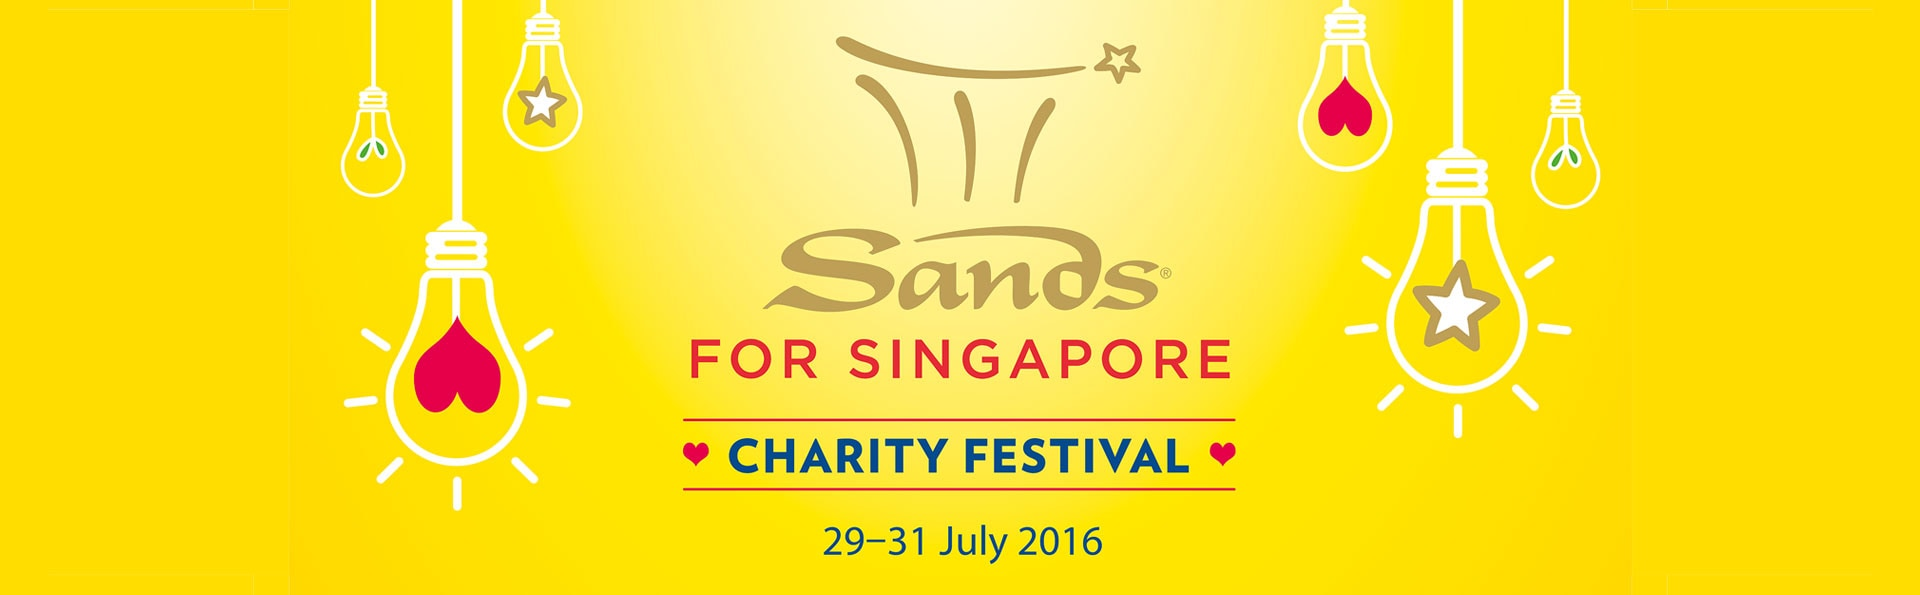 Sands for Singapore 2016 Charity Festival at Marina Bay Sands